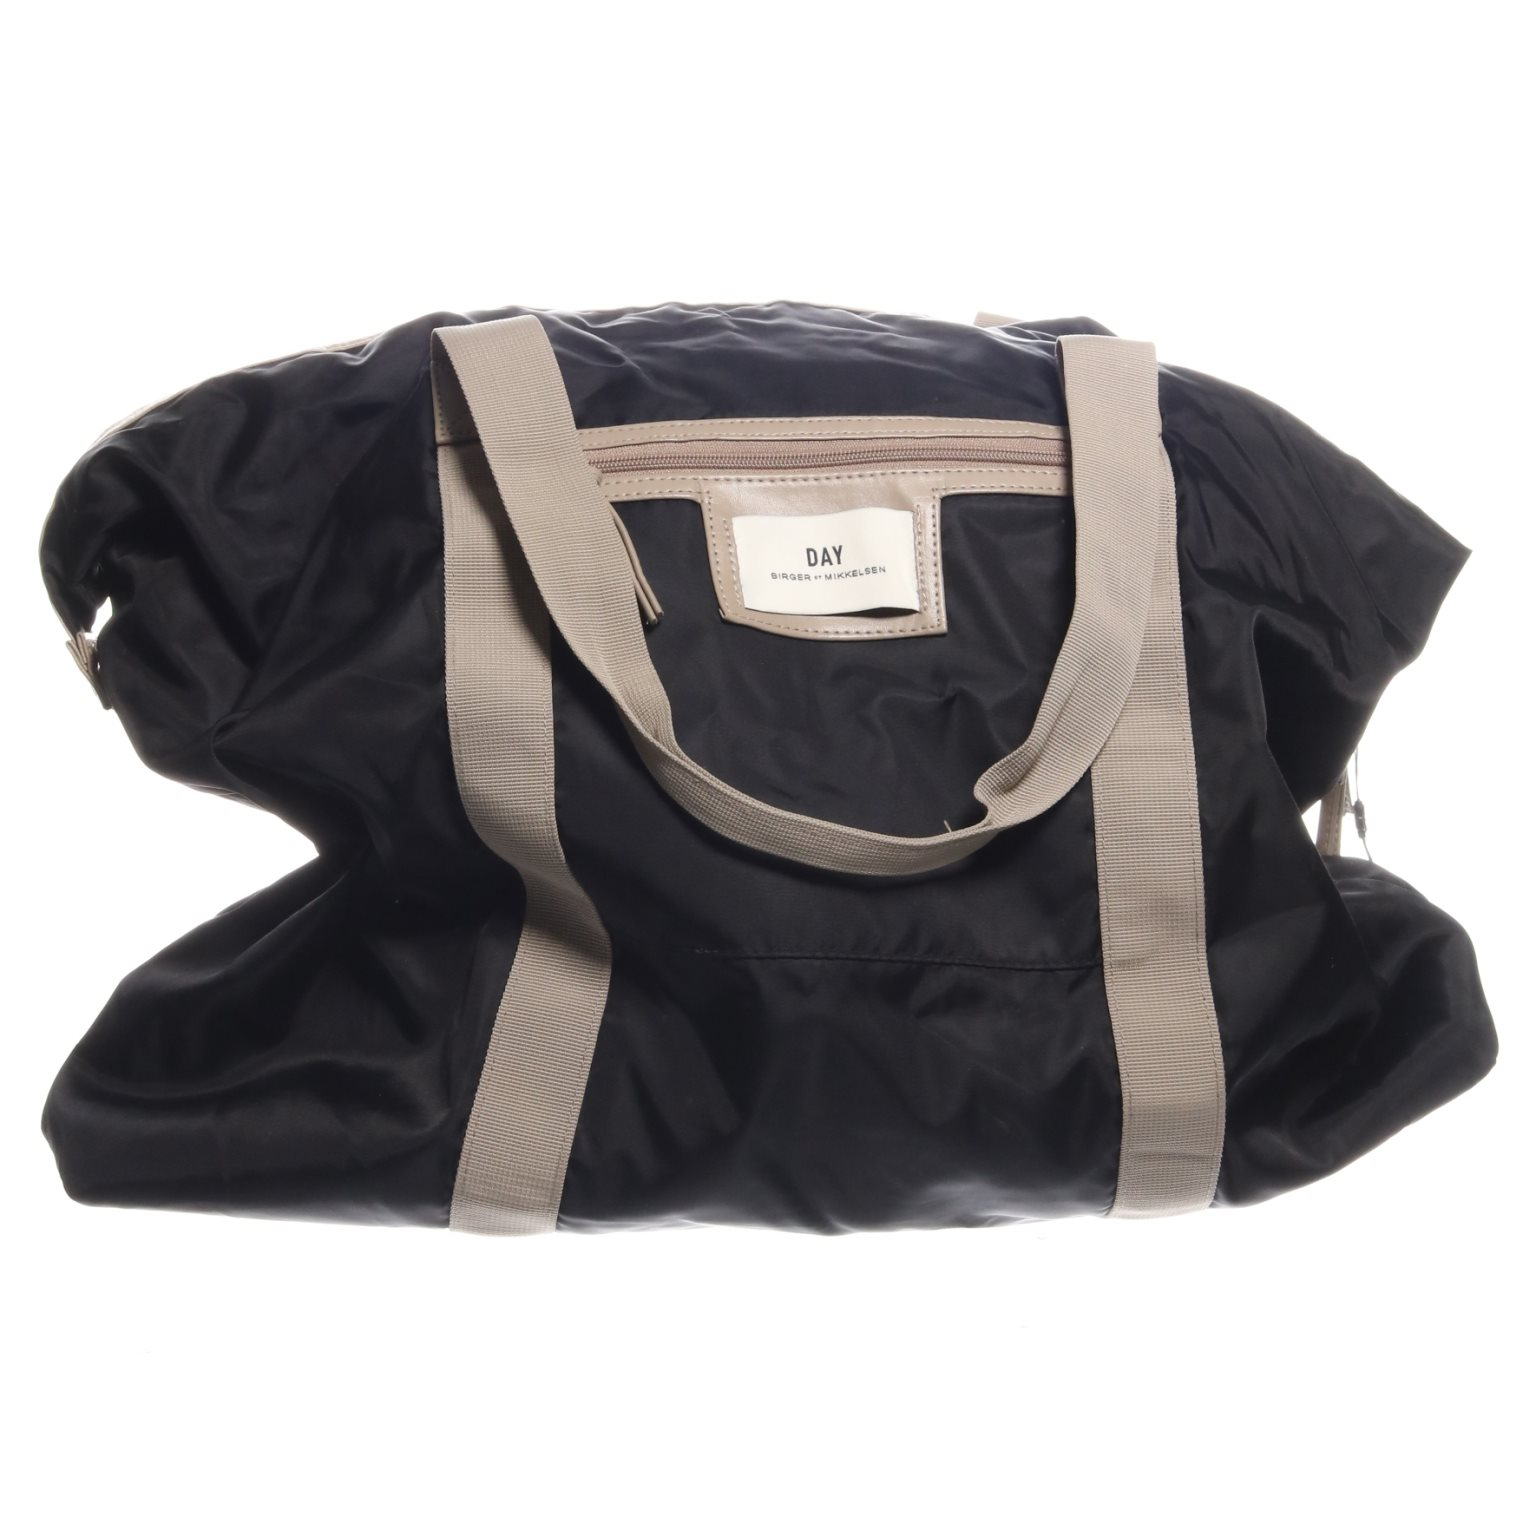 DAY Birger et Mikkelsen, Weekendbag, Svart/Beige